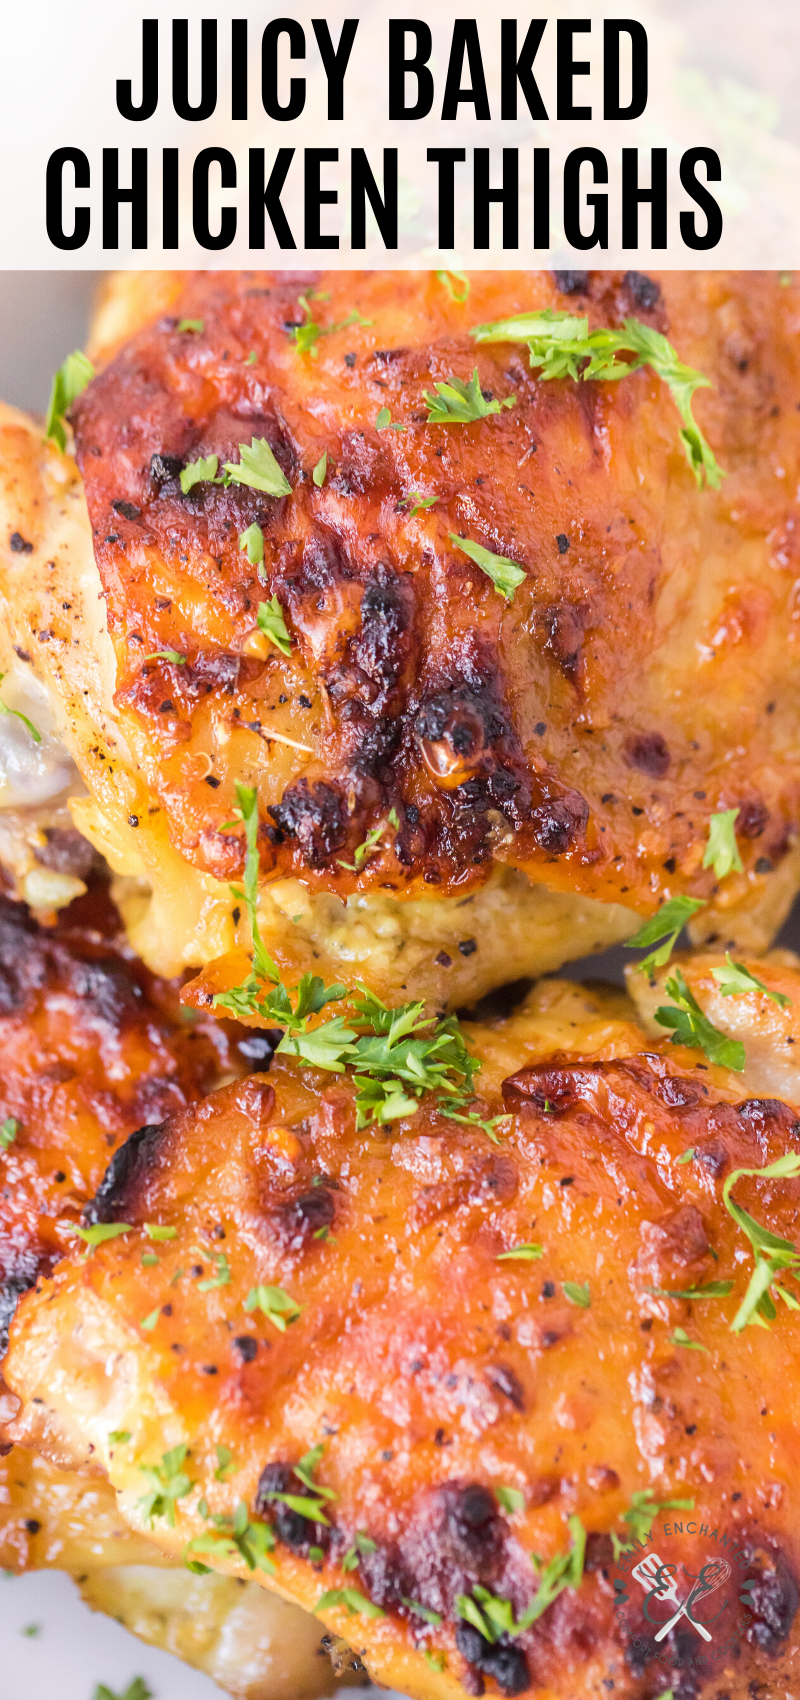 Oven Baked Chicken Thighs Recipe Chicken Thigh Recipes Baked Oven Baked Chicken Thighs Chicken Thigh Fillet Recipes